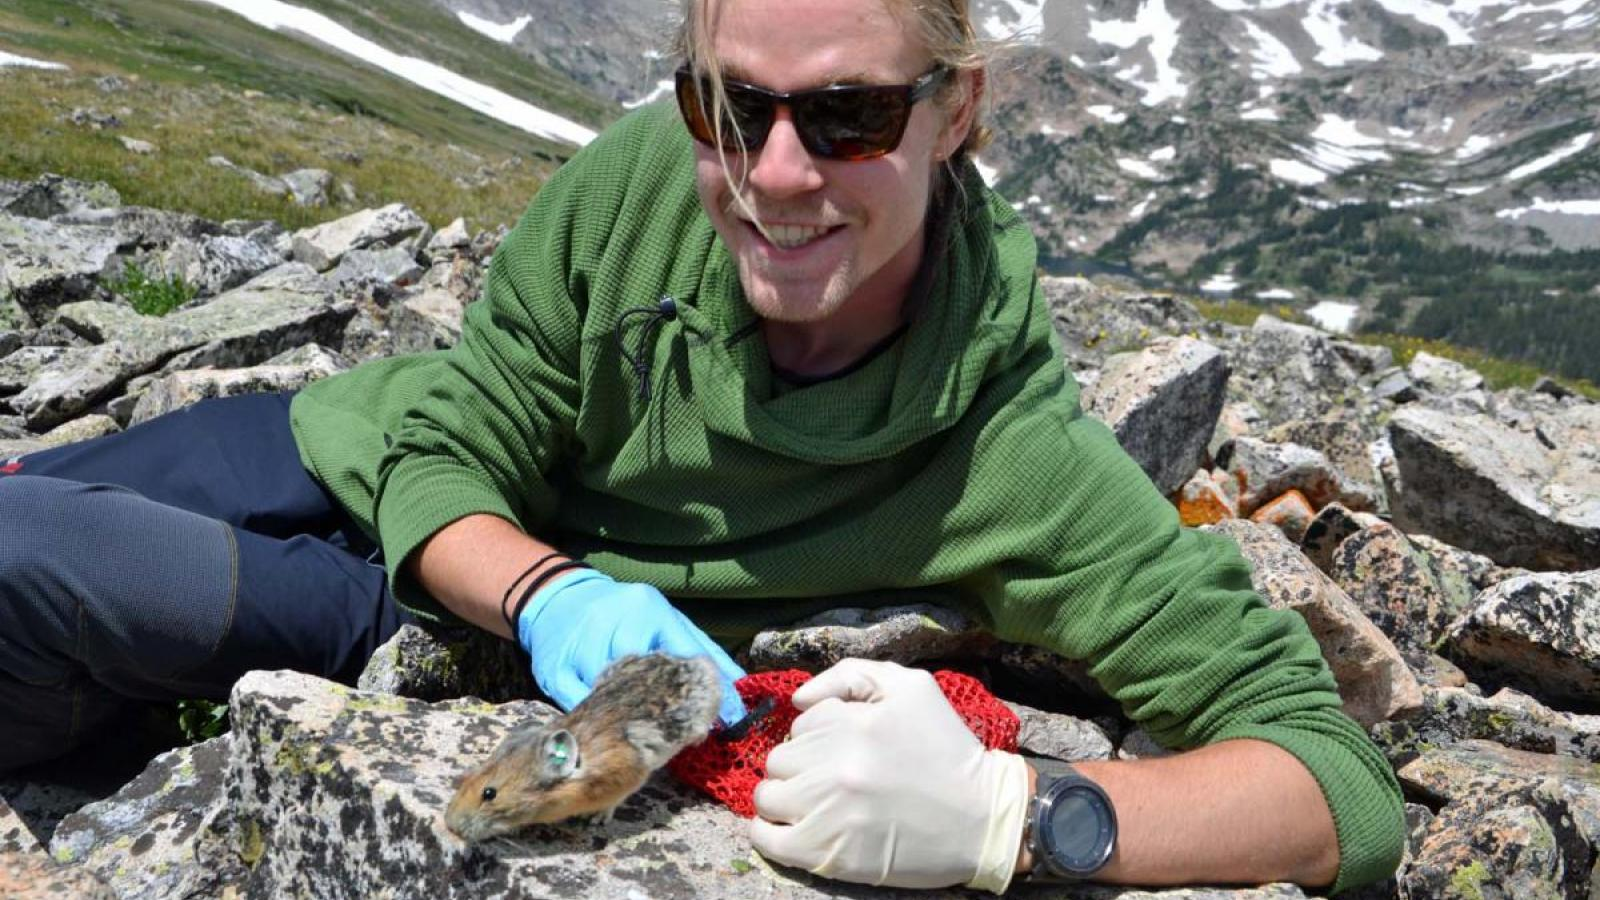 Max Wasser studies pikas near Mountain Research Station west of Boulder